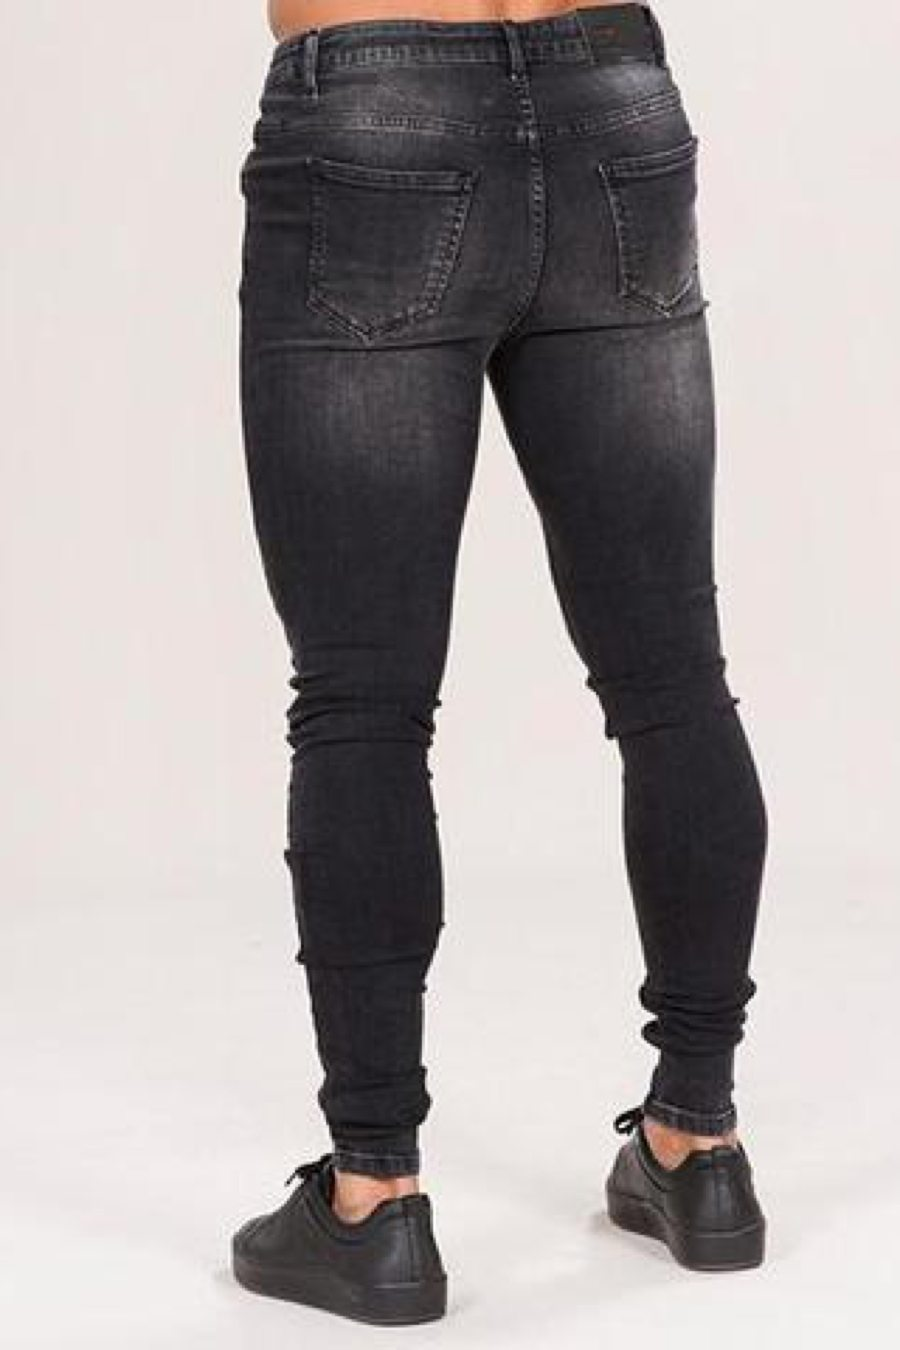 Emulate Marquee Ripped Skinny Jeans - Black Wash - 2